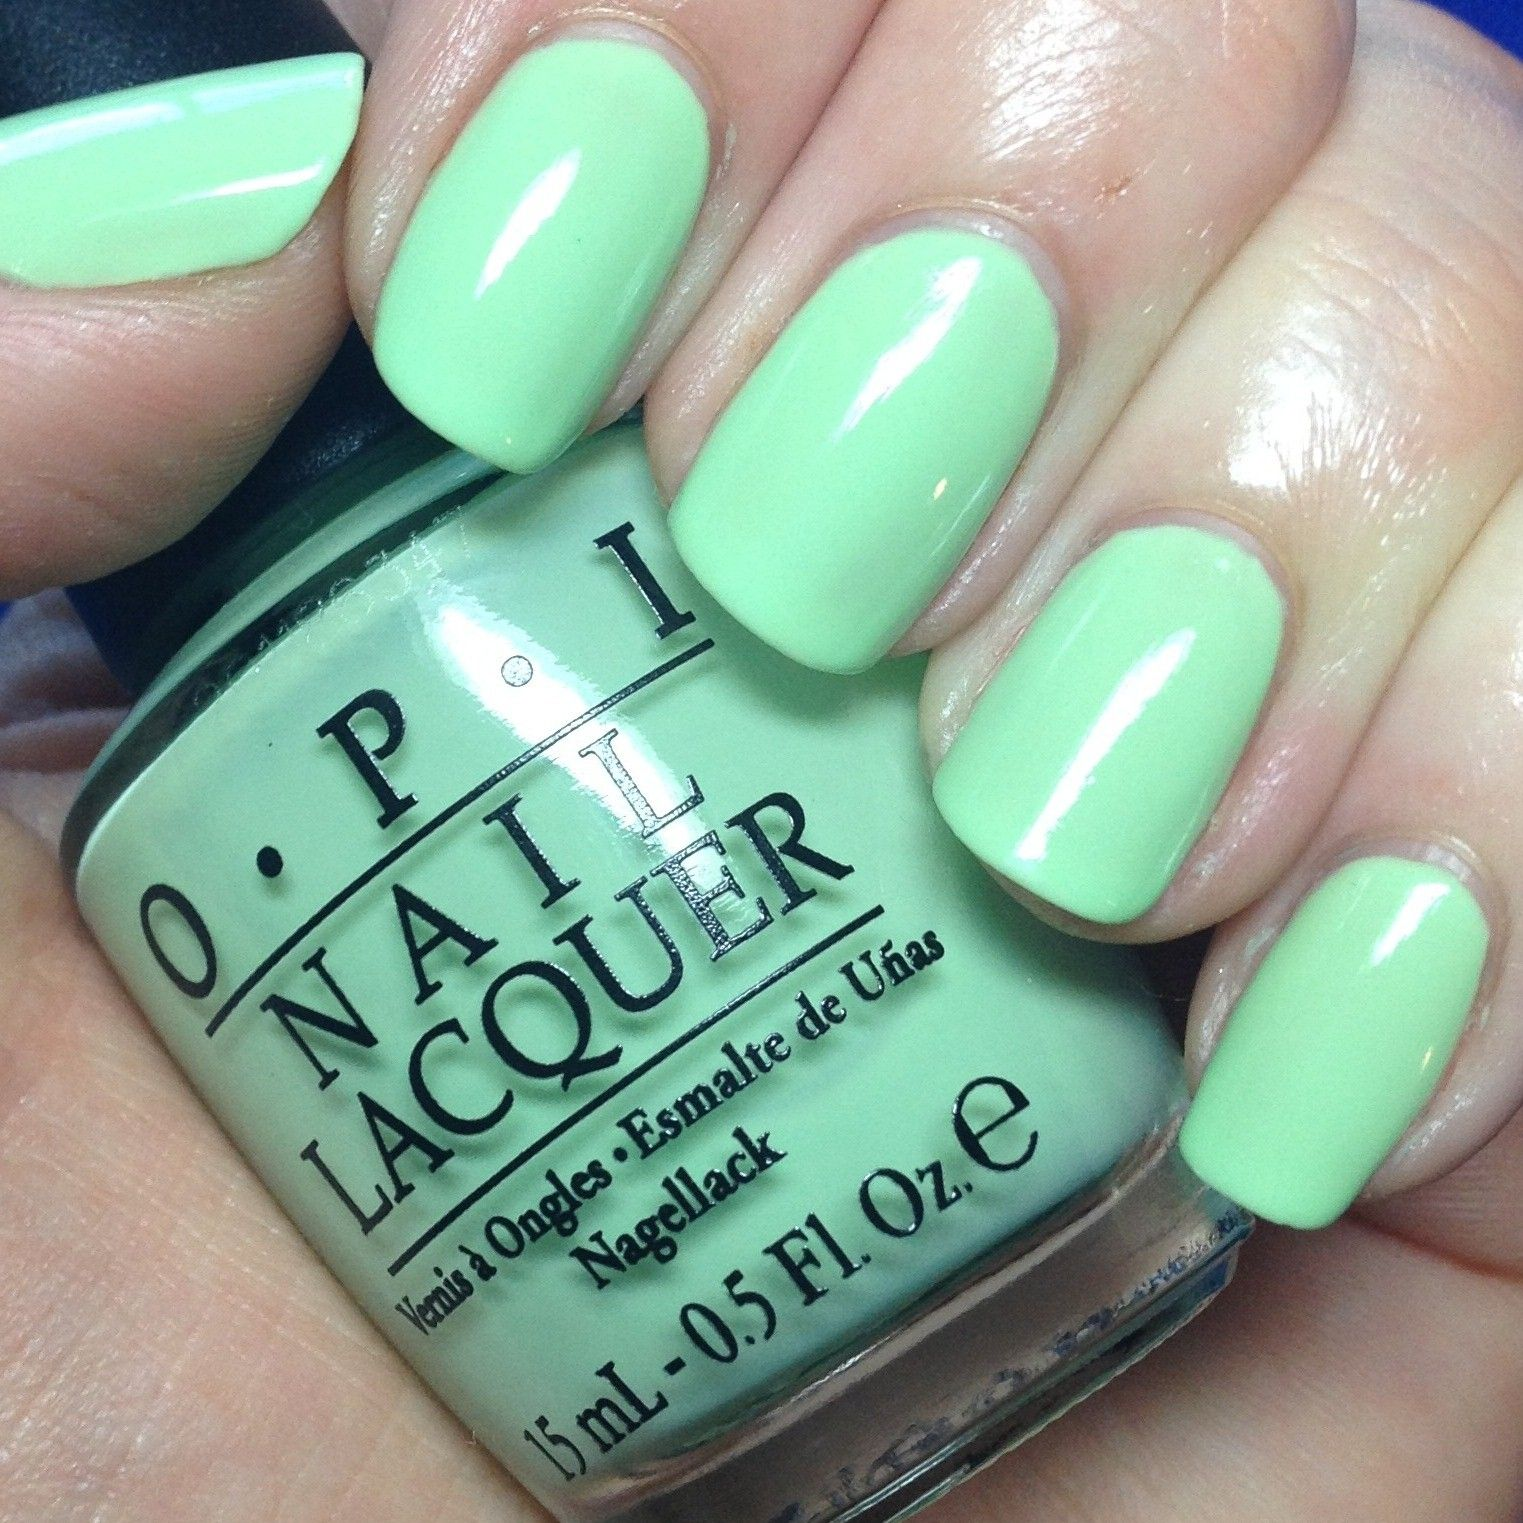 OPI gargantuan green grape | Nail obsession | Pinterest